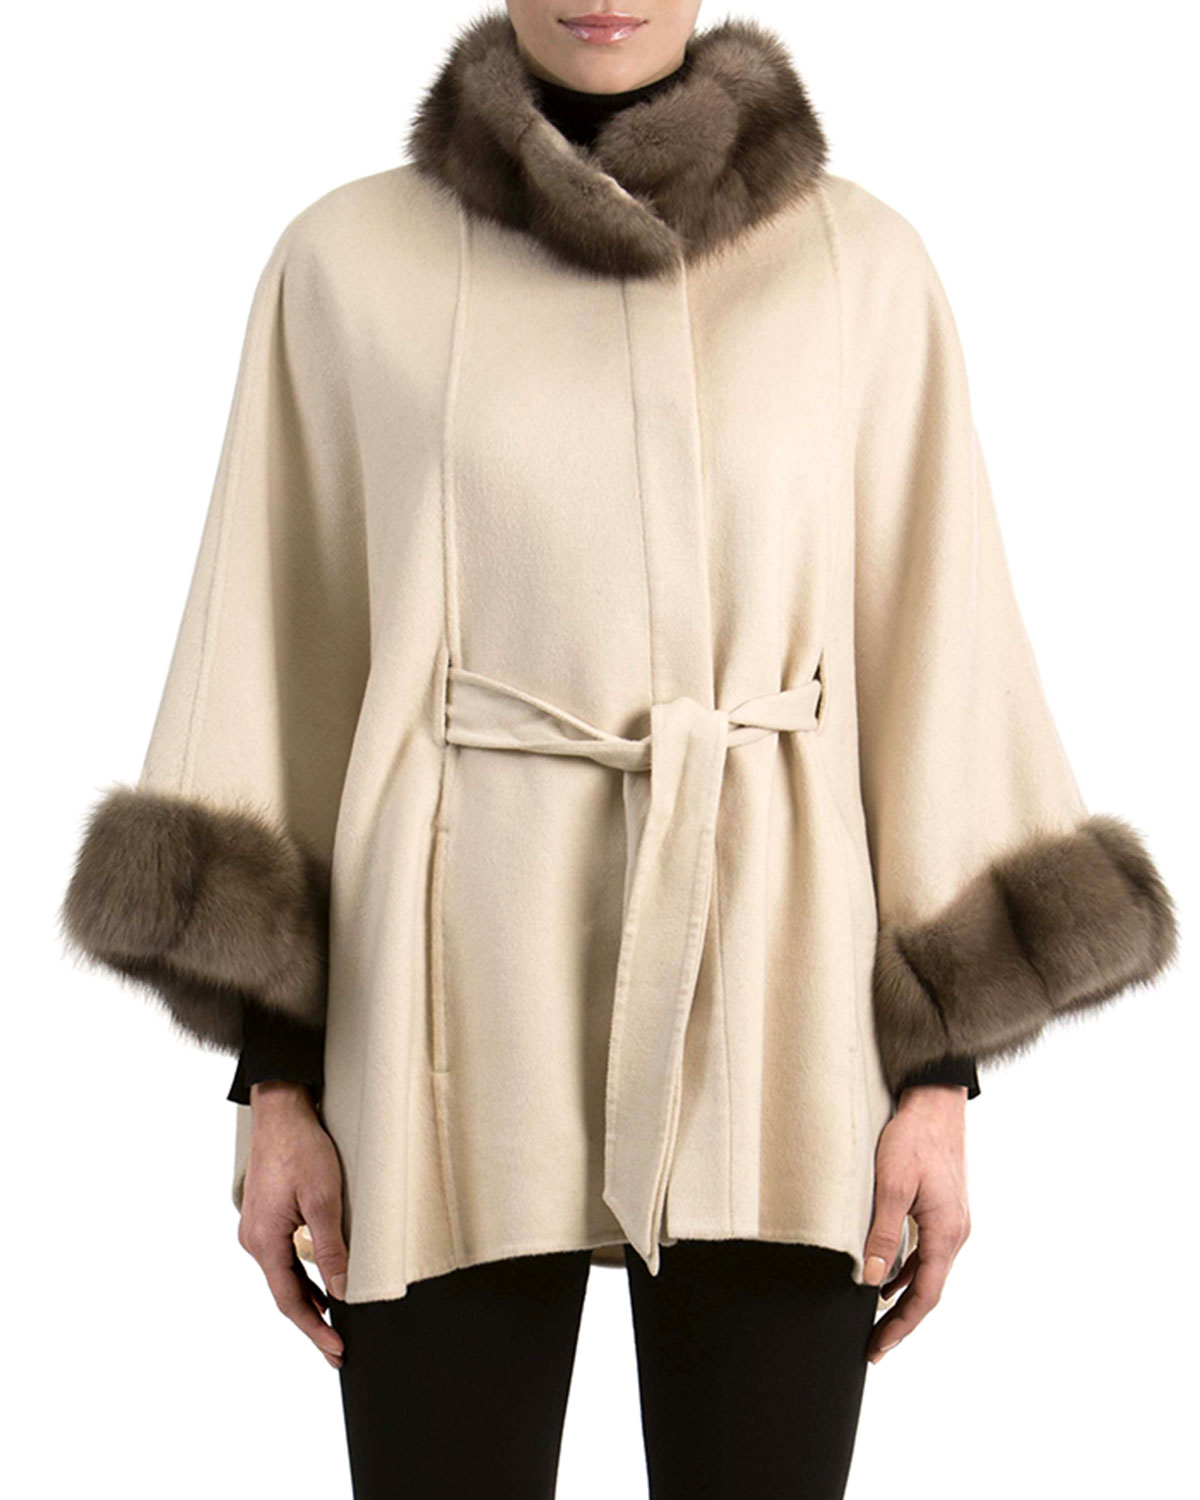 Gorski Cashmere Belted Cape with Sable Fur | Neiman Marcus for Sable Fur Cape  173lyp